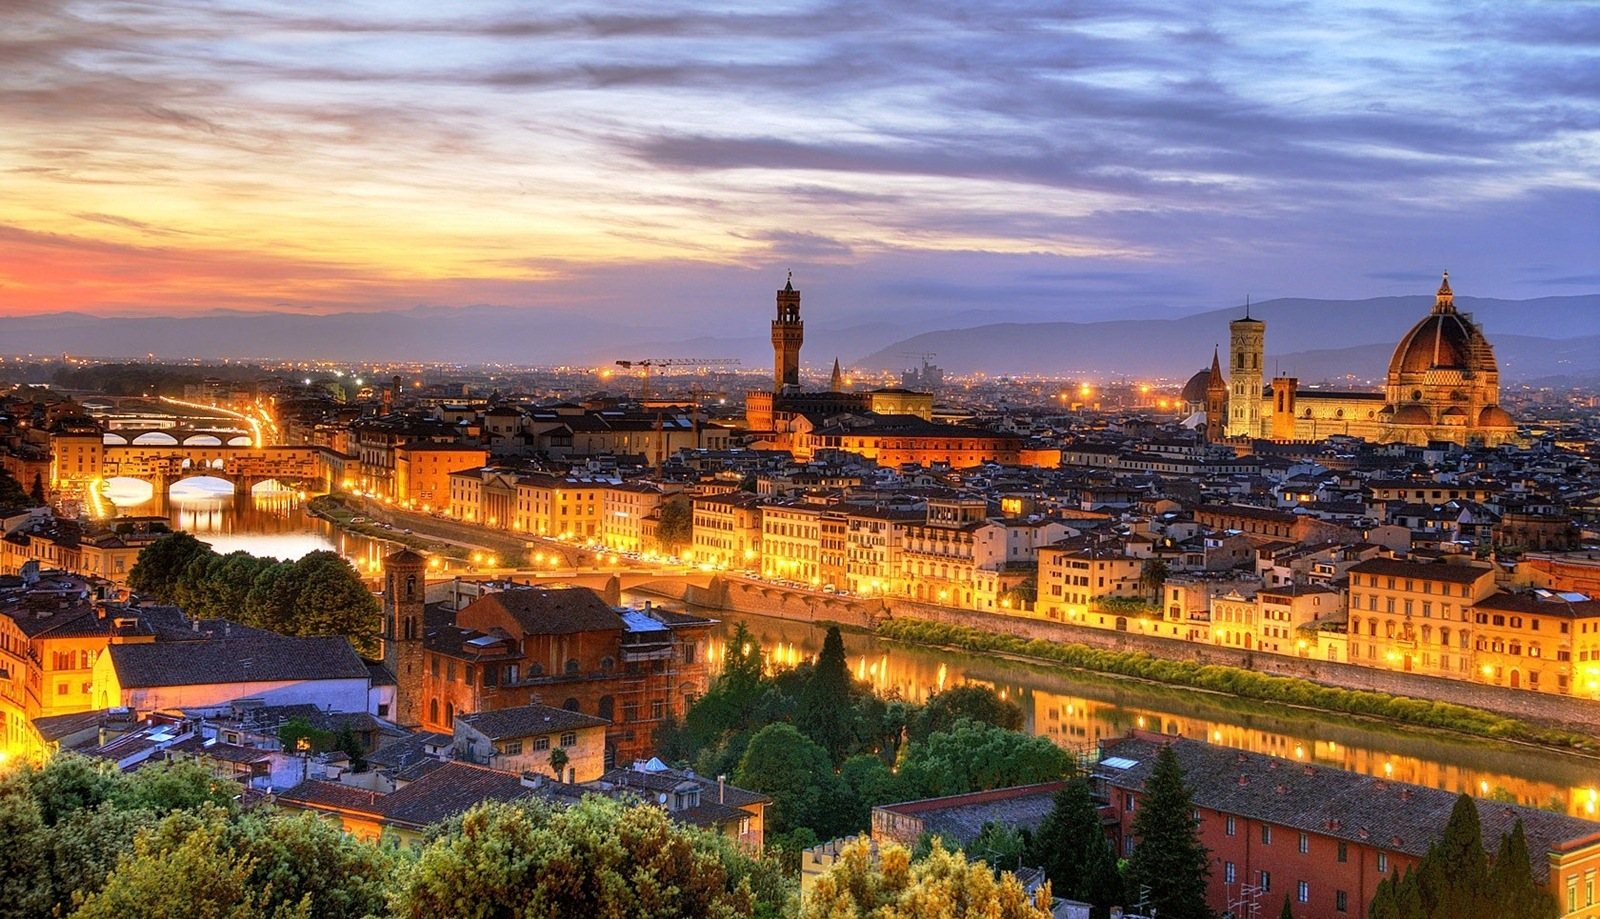 Dove dormire a Firenze | Sviaggiare.it